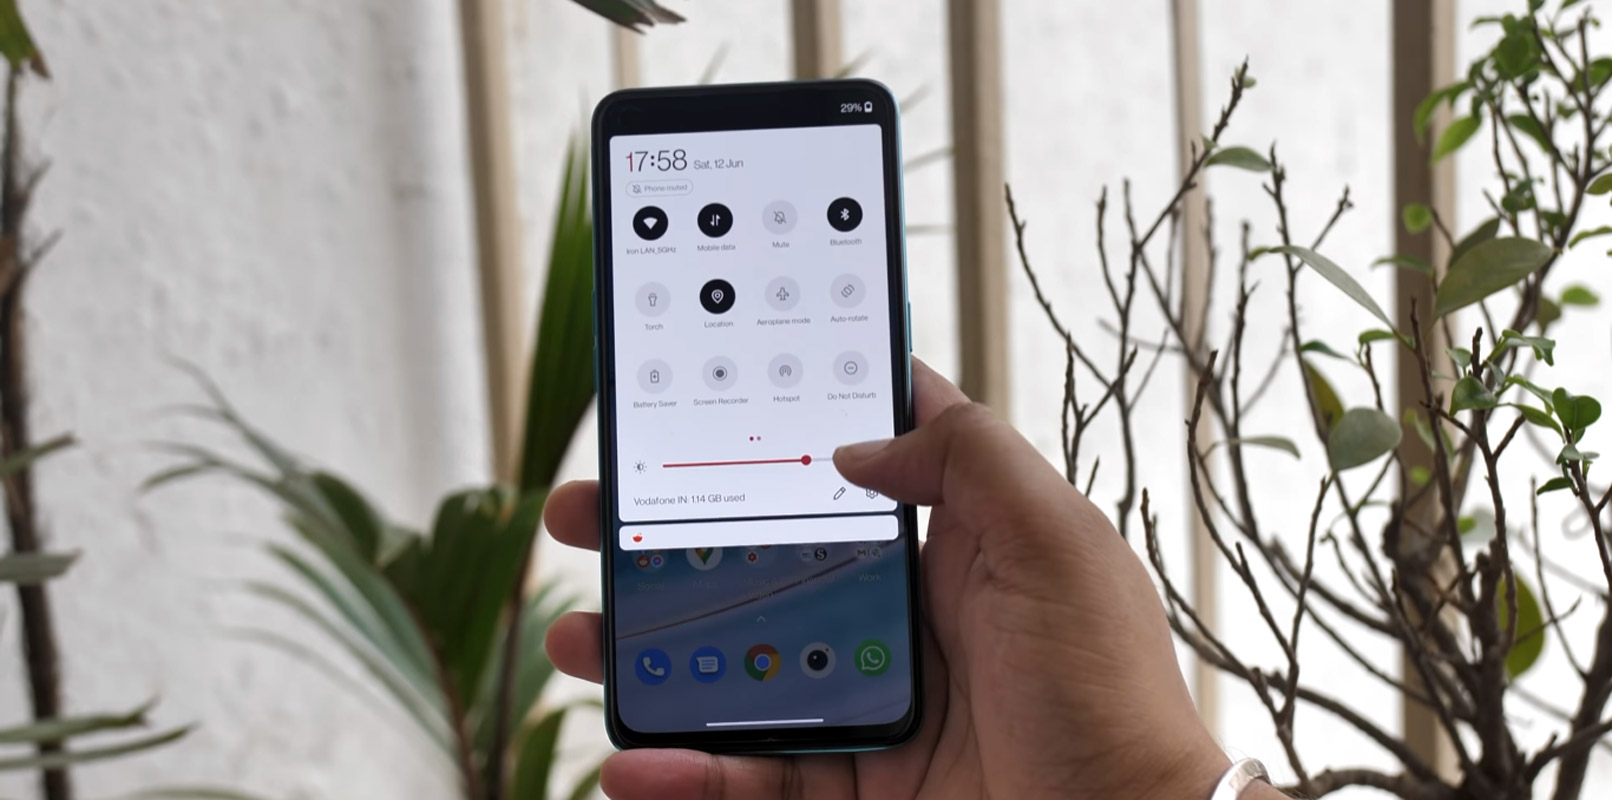 OnePlus Nord CE 5G Settings